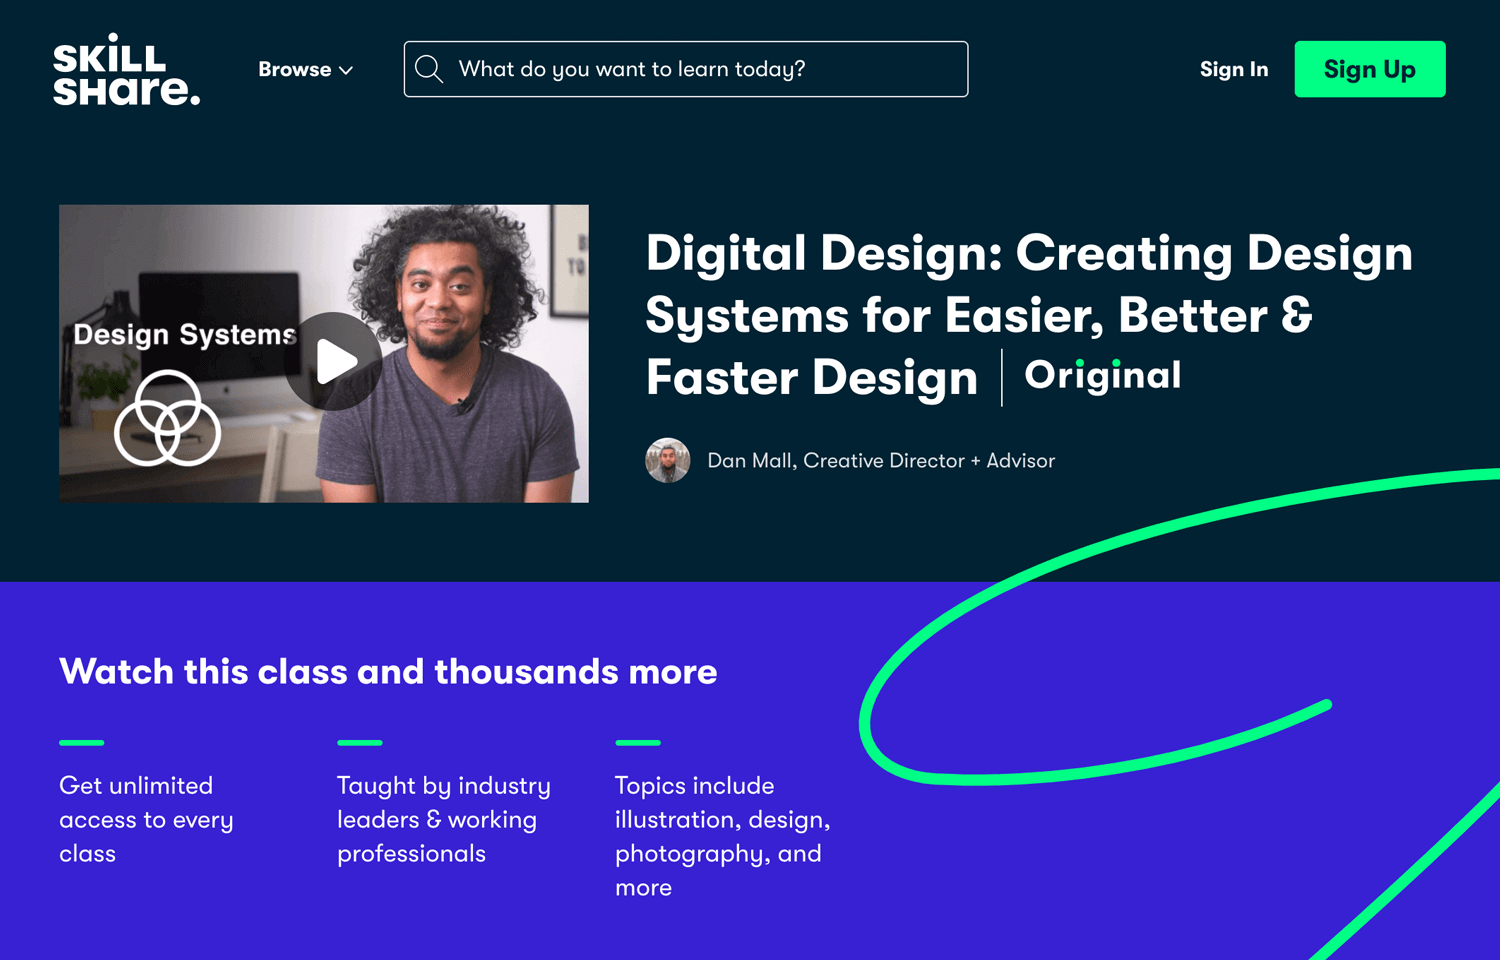 web design tutorial on creating design systems